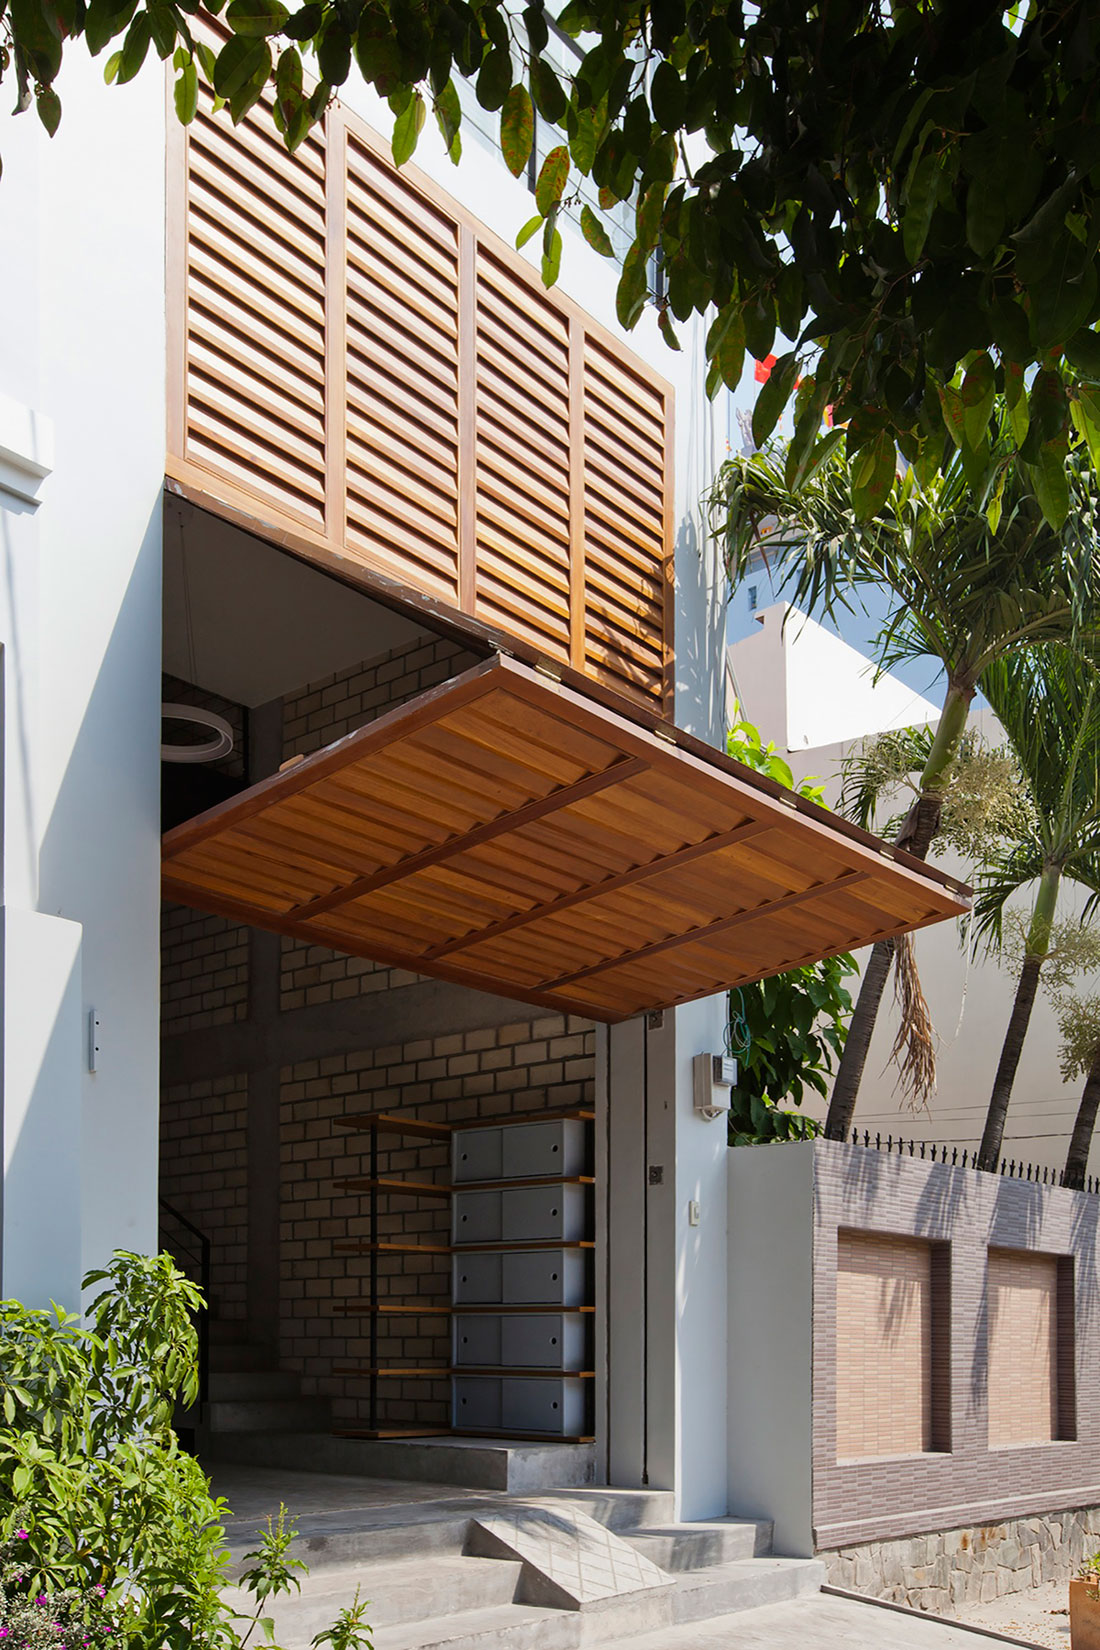 Townhouse with a Folding-Up Shutter by MM++ architects (3)